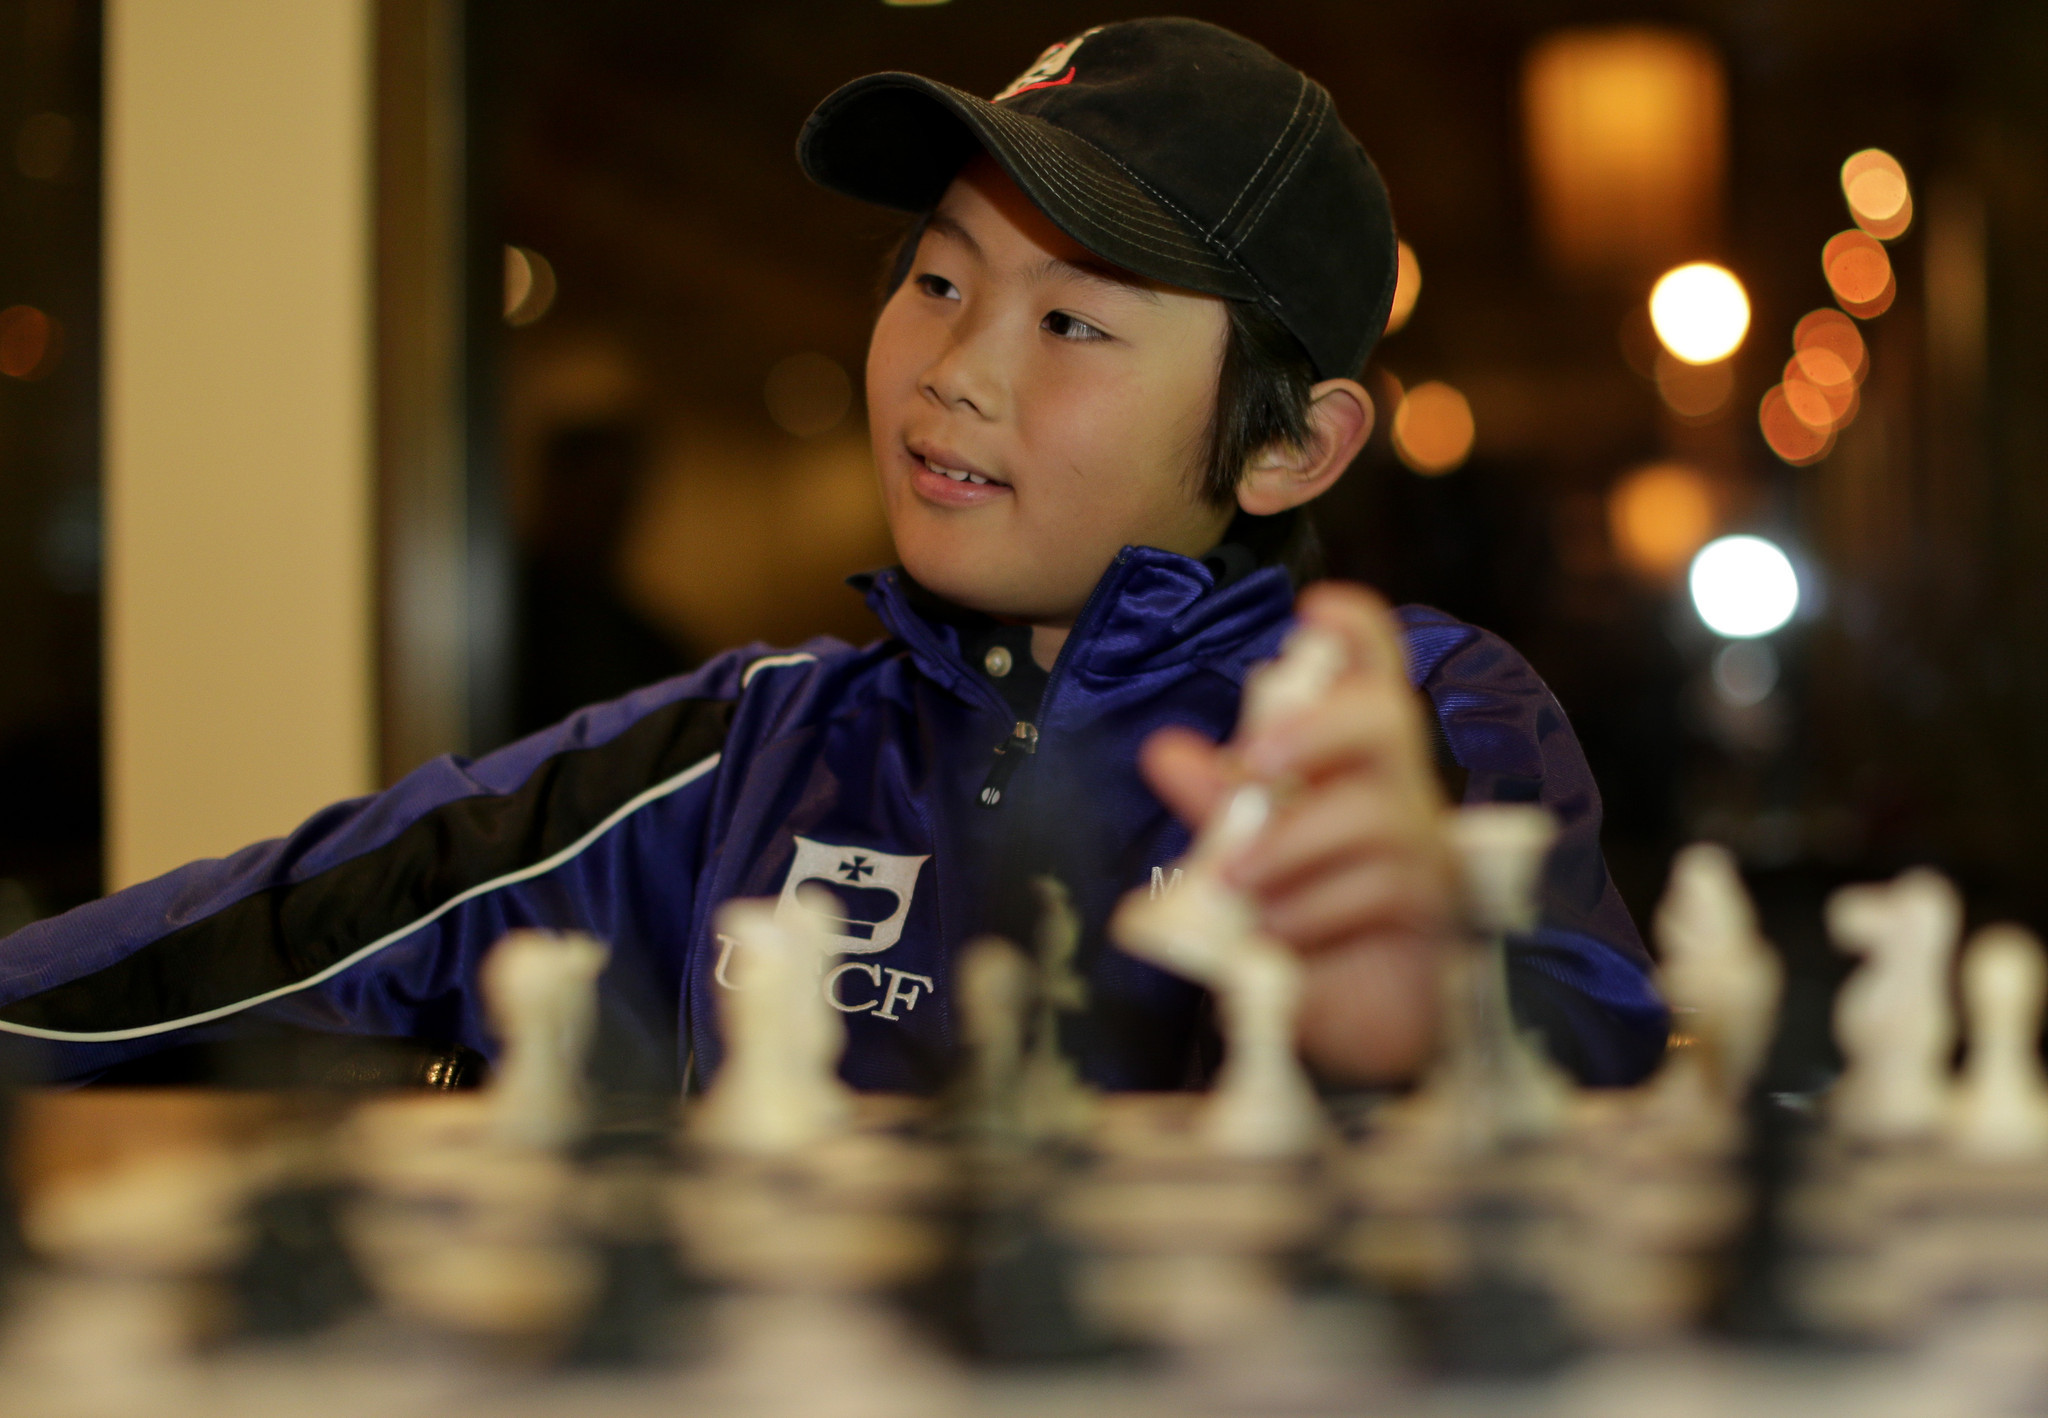 Youngest U S  Chess Master, 10: I've Got To Work On My End